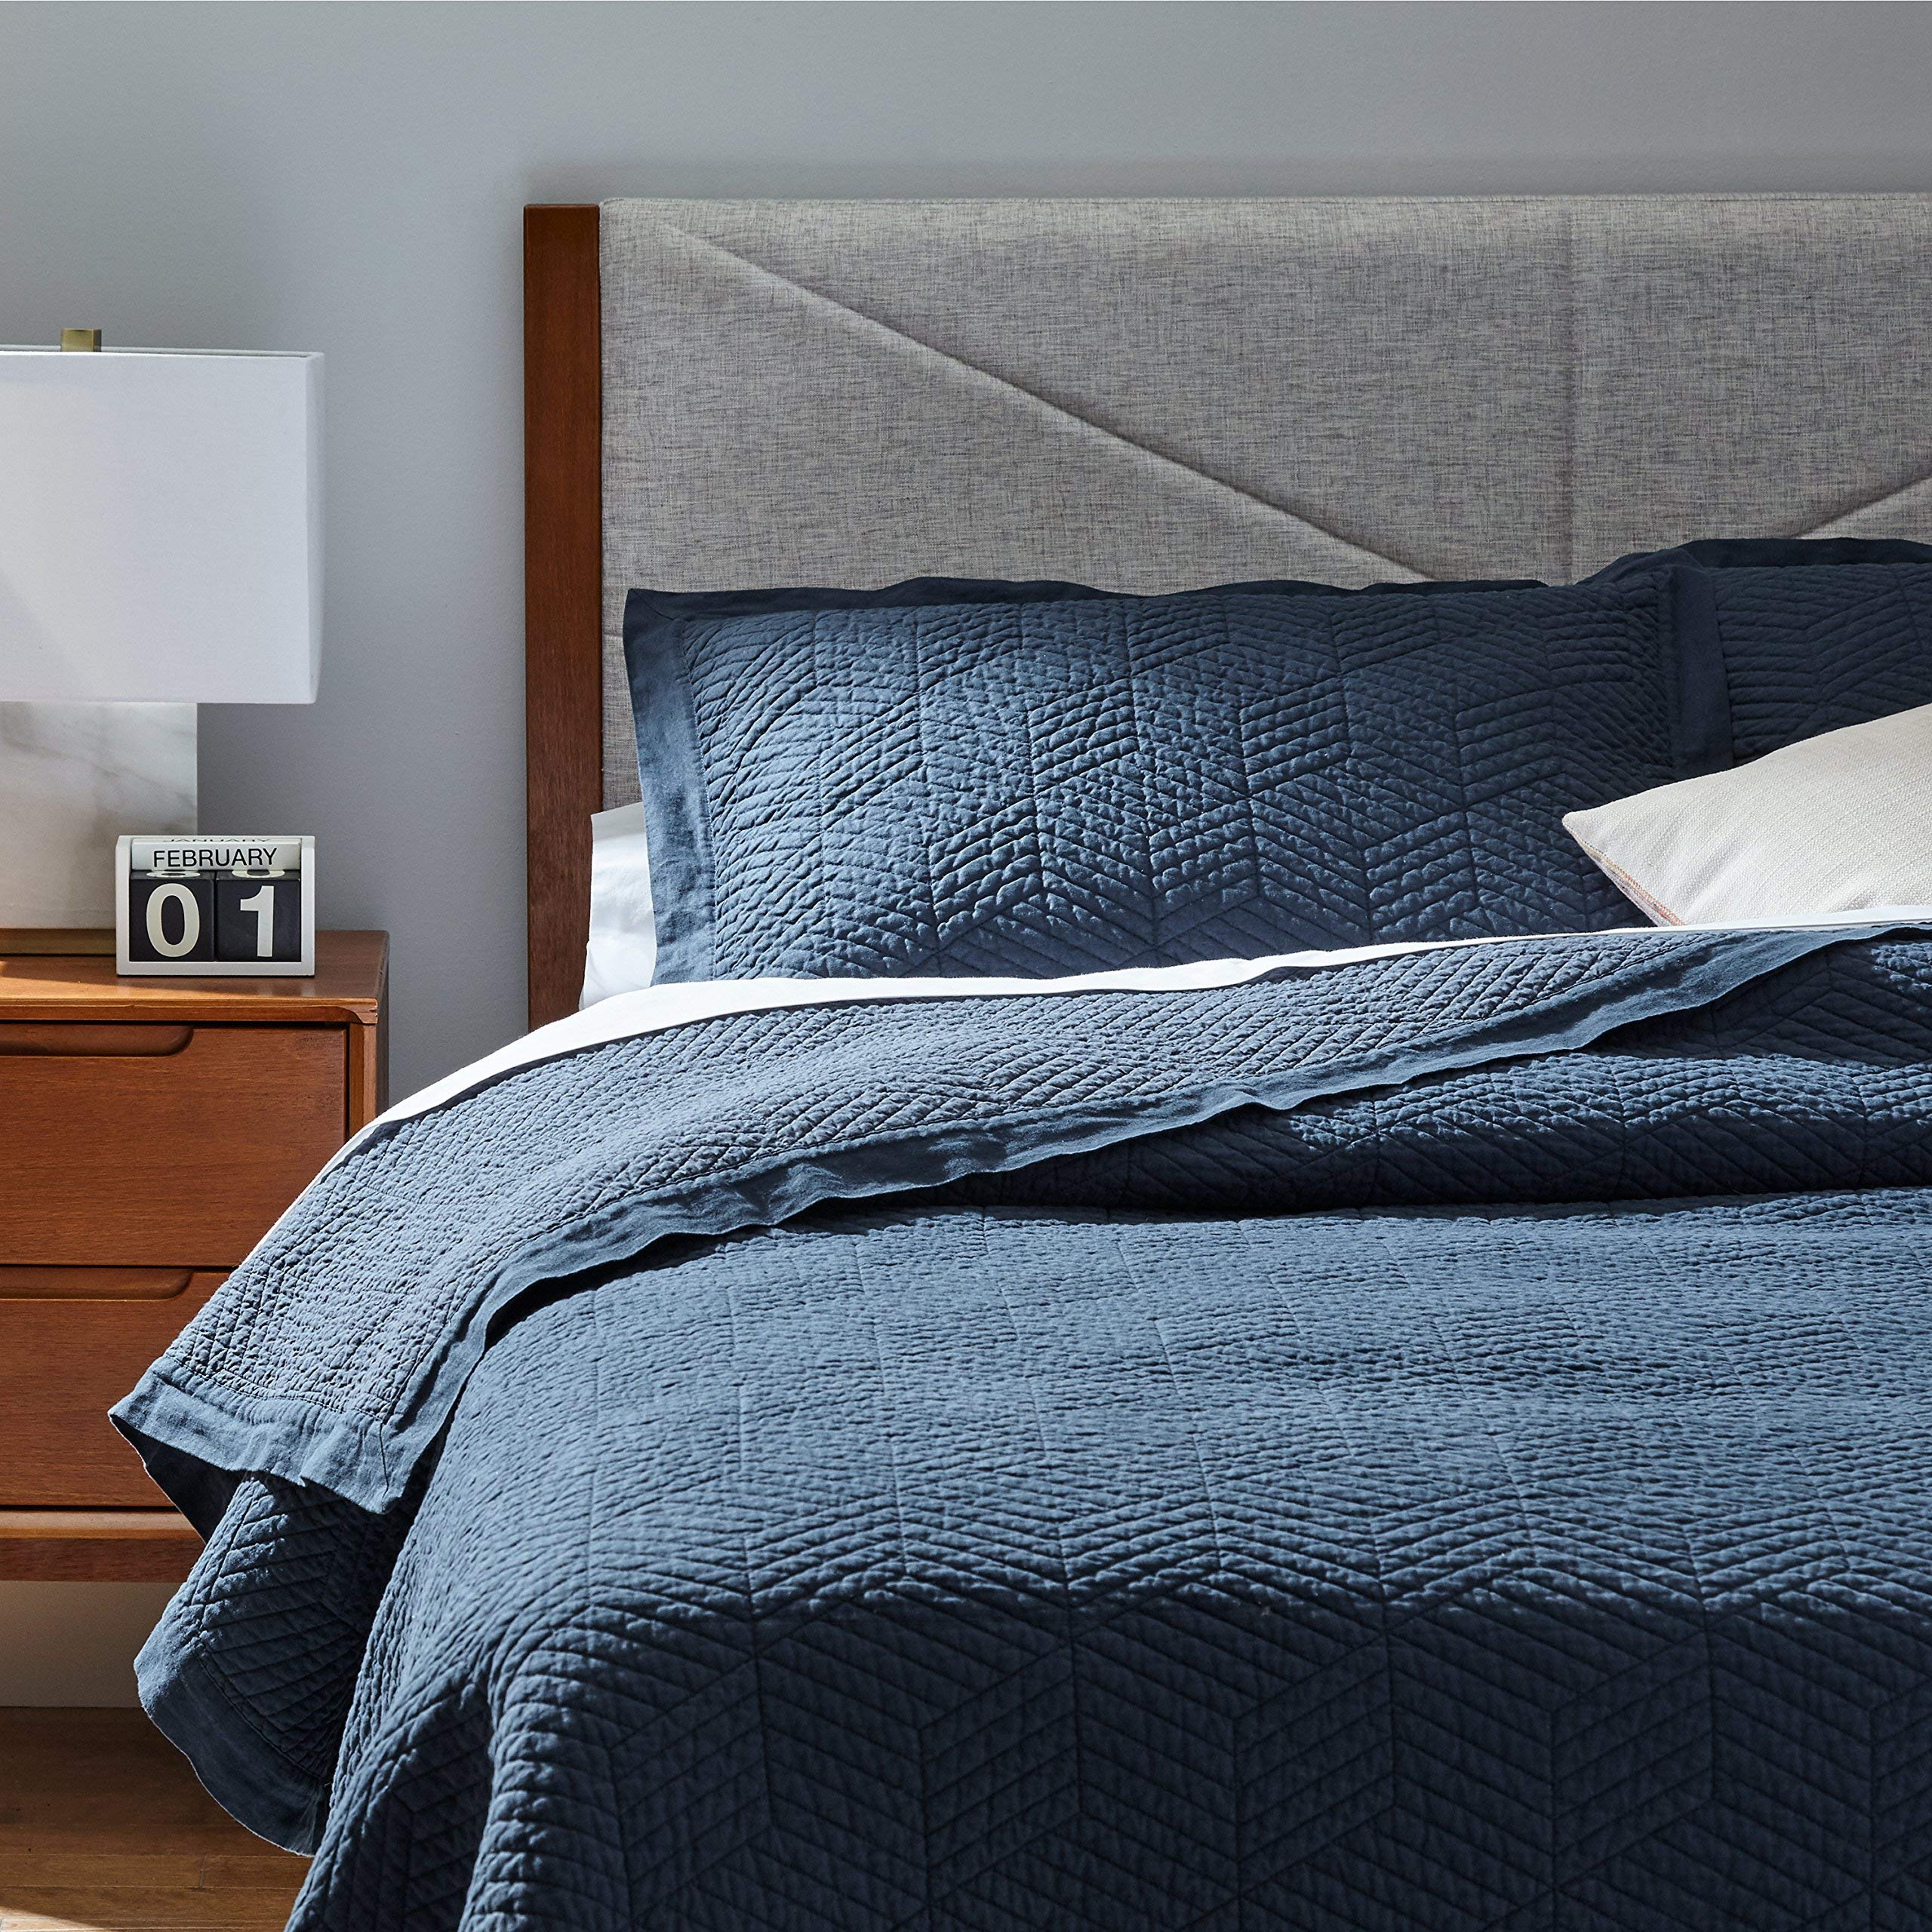 Rivet Modern Stone Washed Textured Geo Coverlet Bedding Set, Full / Queen, Soft and Easy Care, 90'' x 90'', Indigo by Rivet